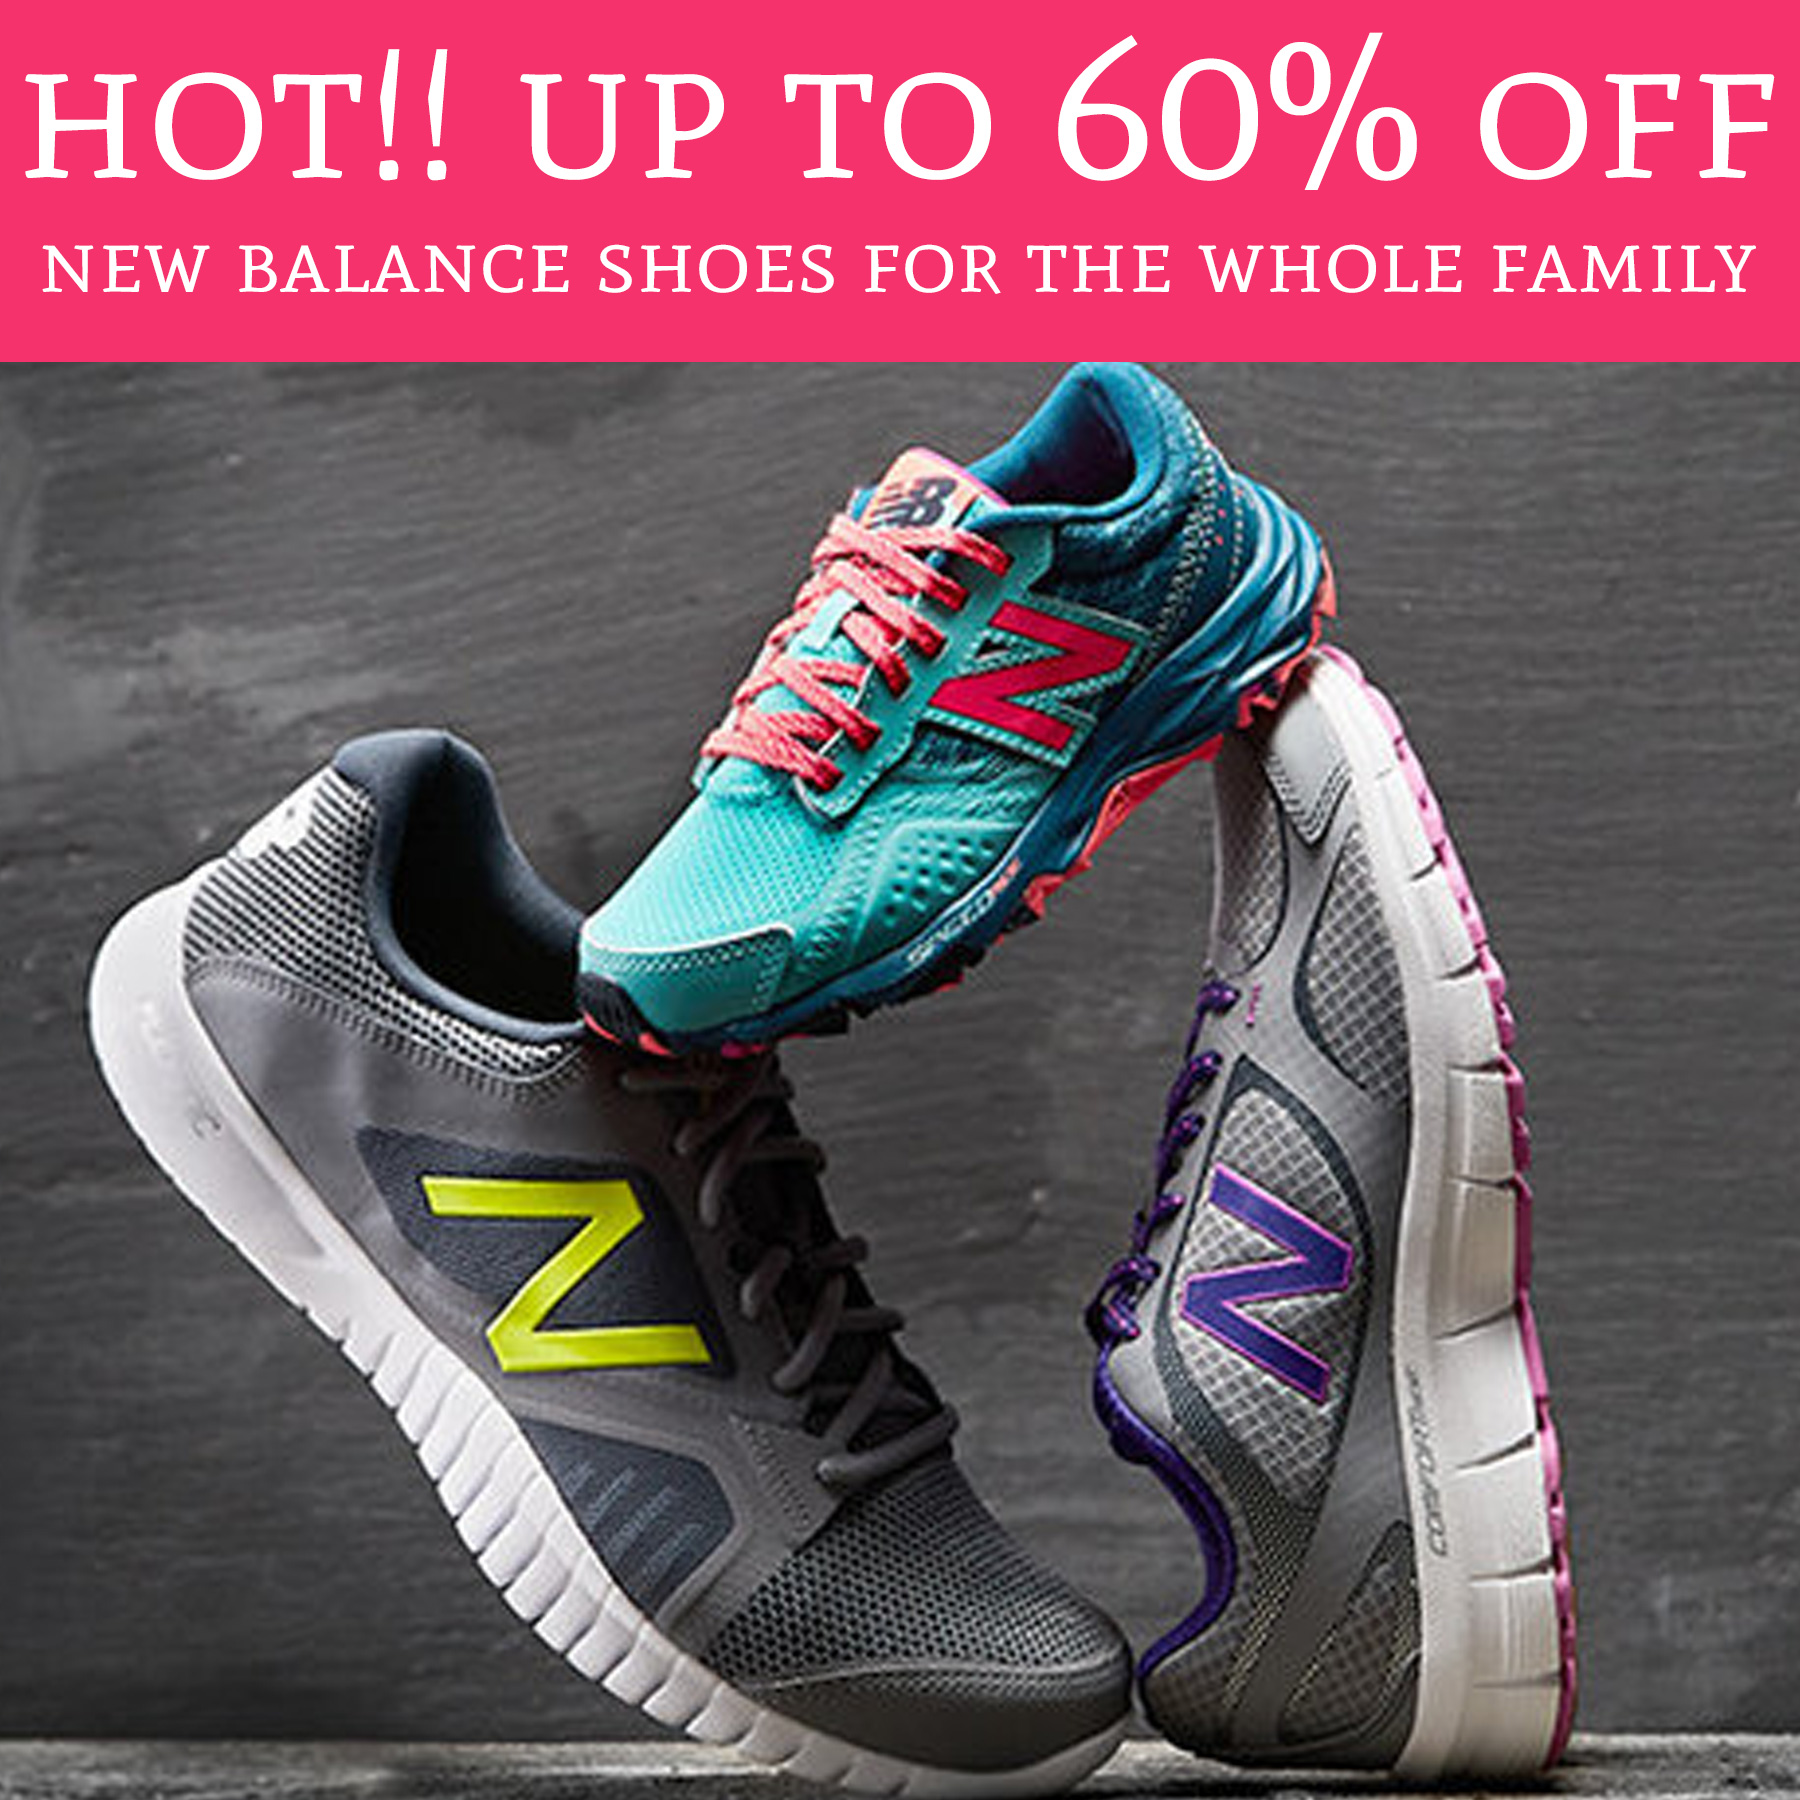 36948214cce5 WOW! Up to 60% Off New Balance Shoes For The Whole Family - Deal ...